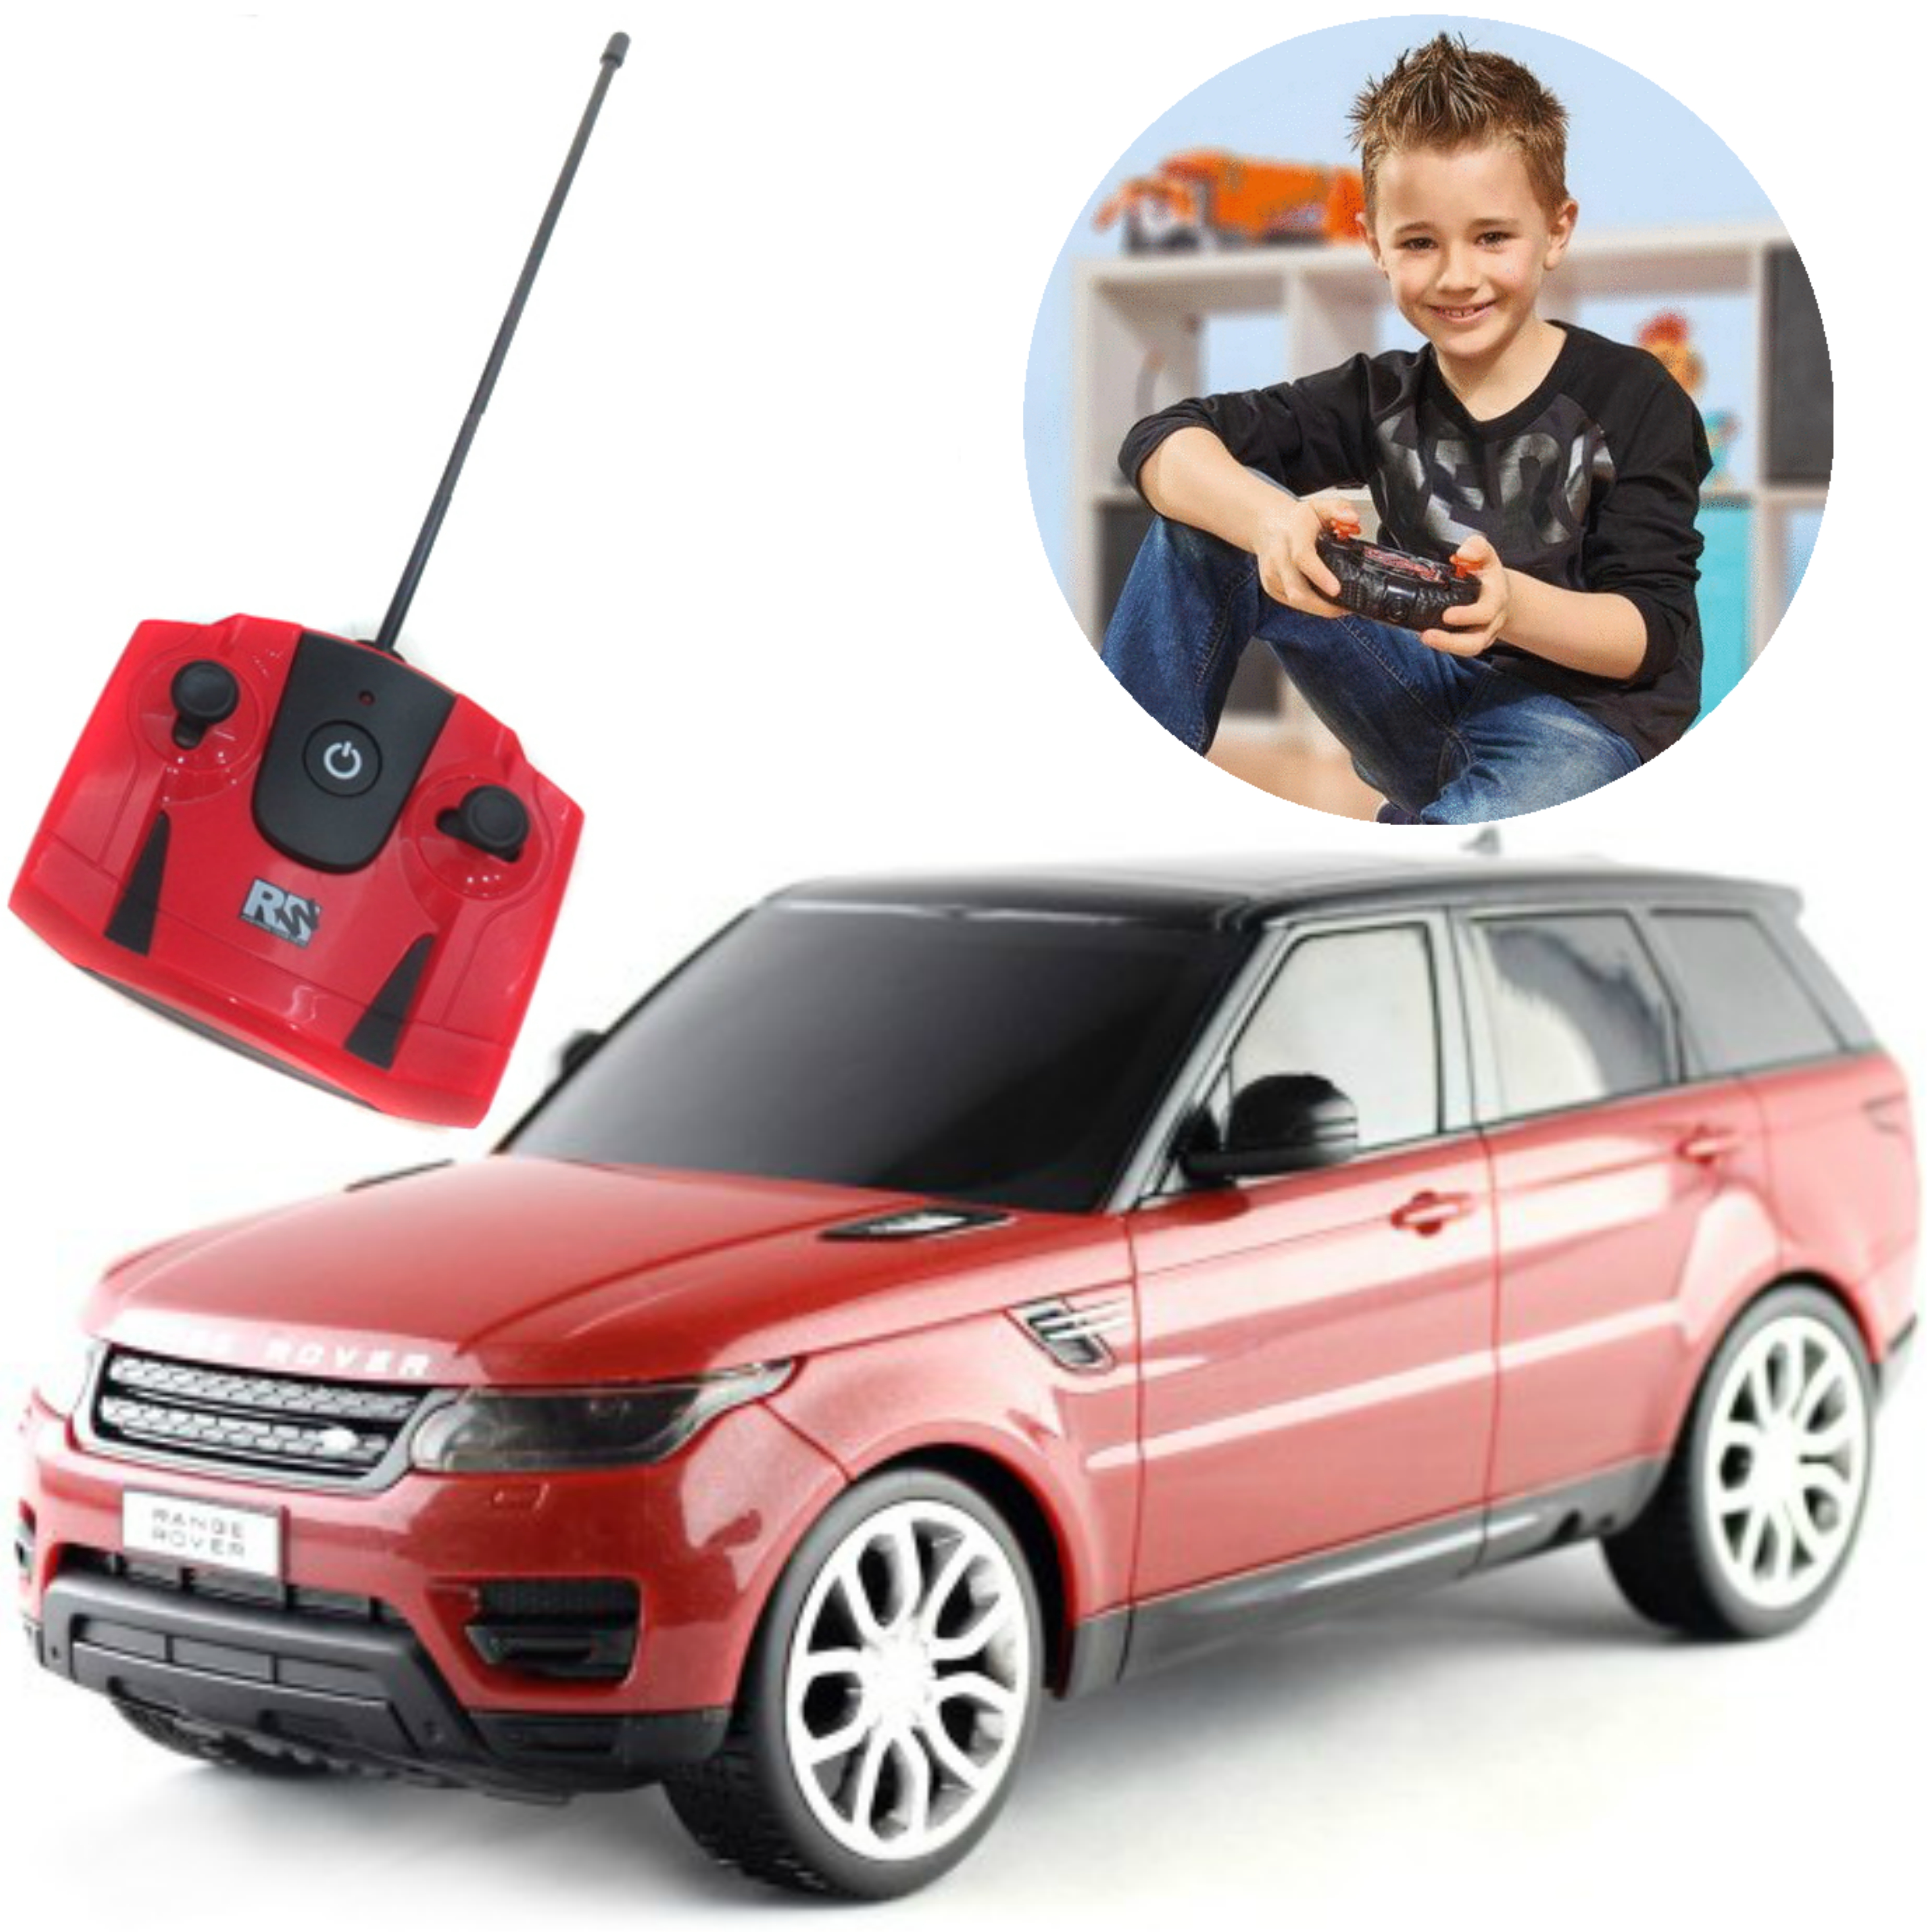 Remote Control ToyCar | Kids Model With Lights - 2014 Range Rover sport | 1:24 Scale | Red